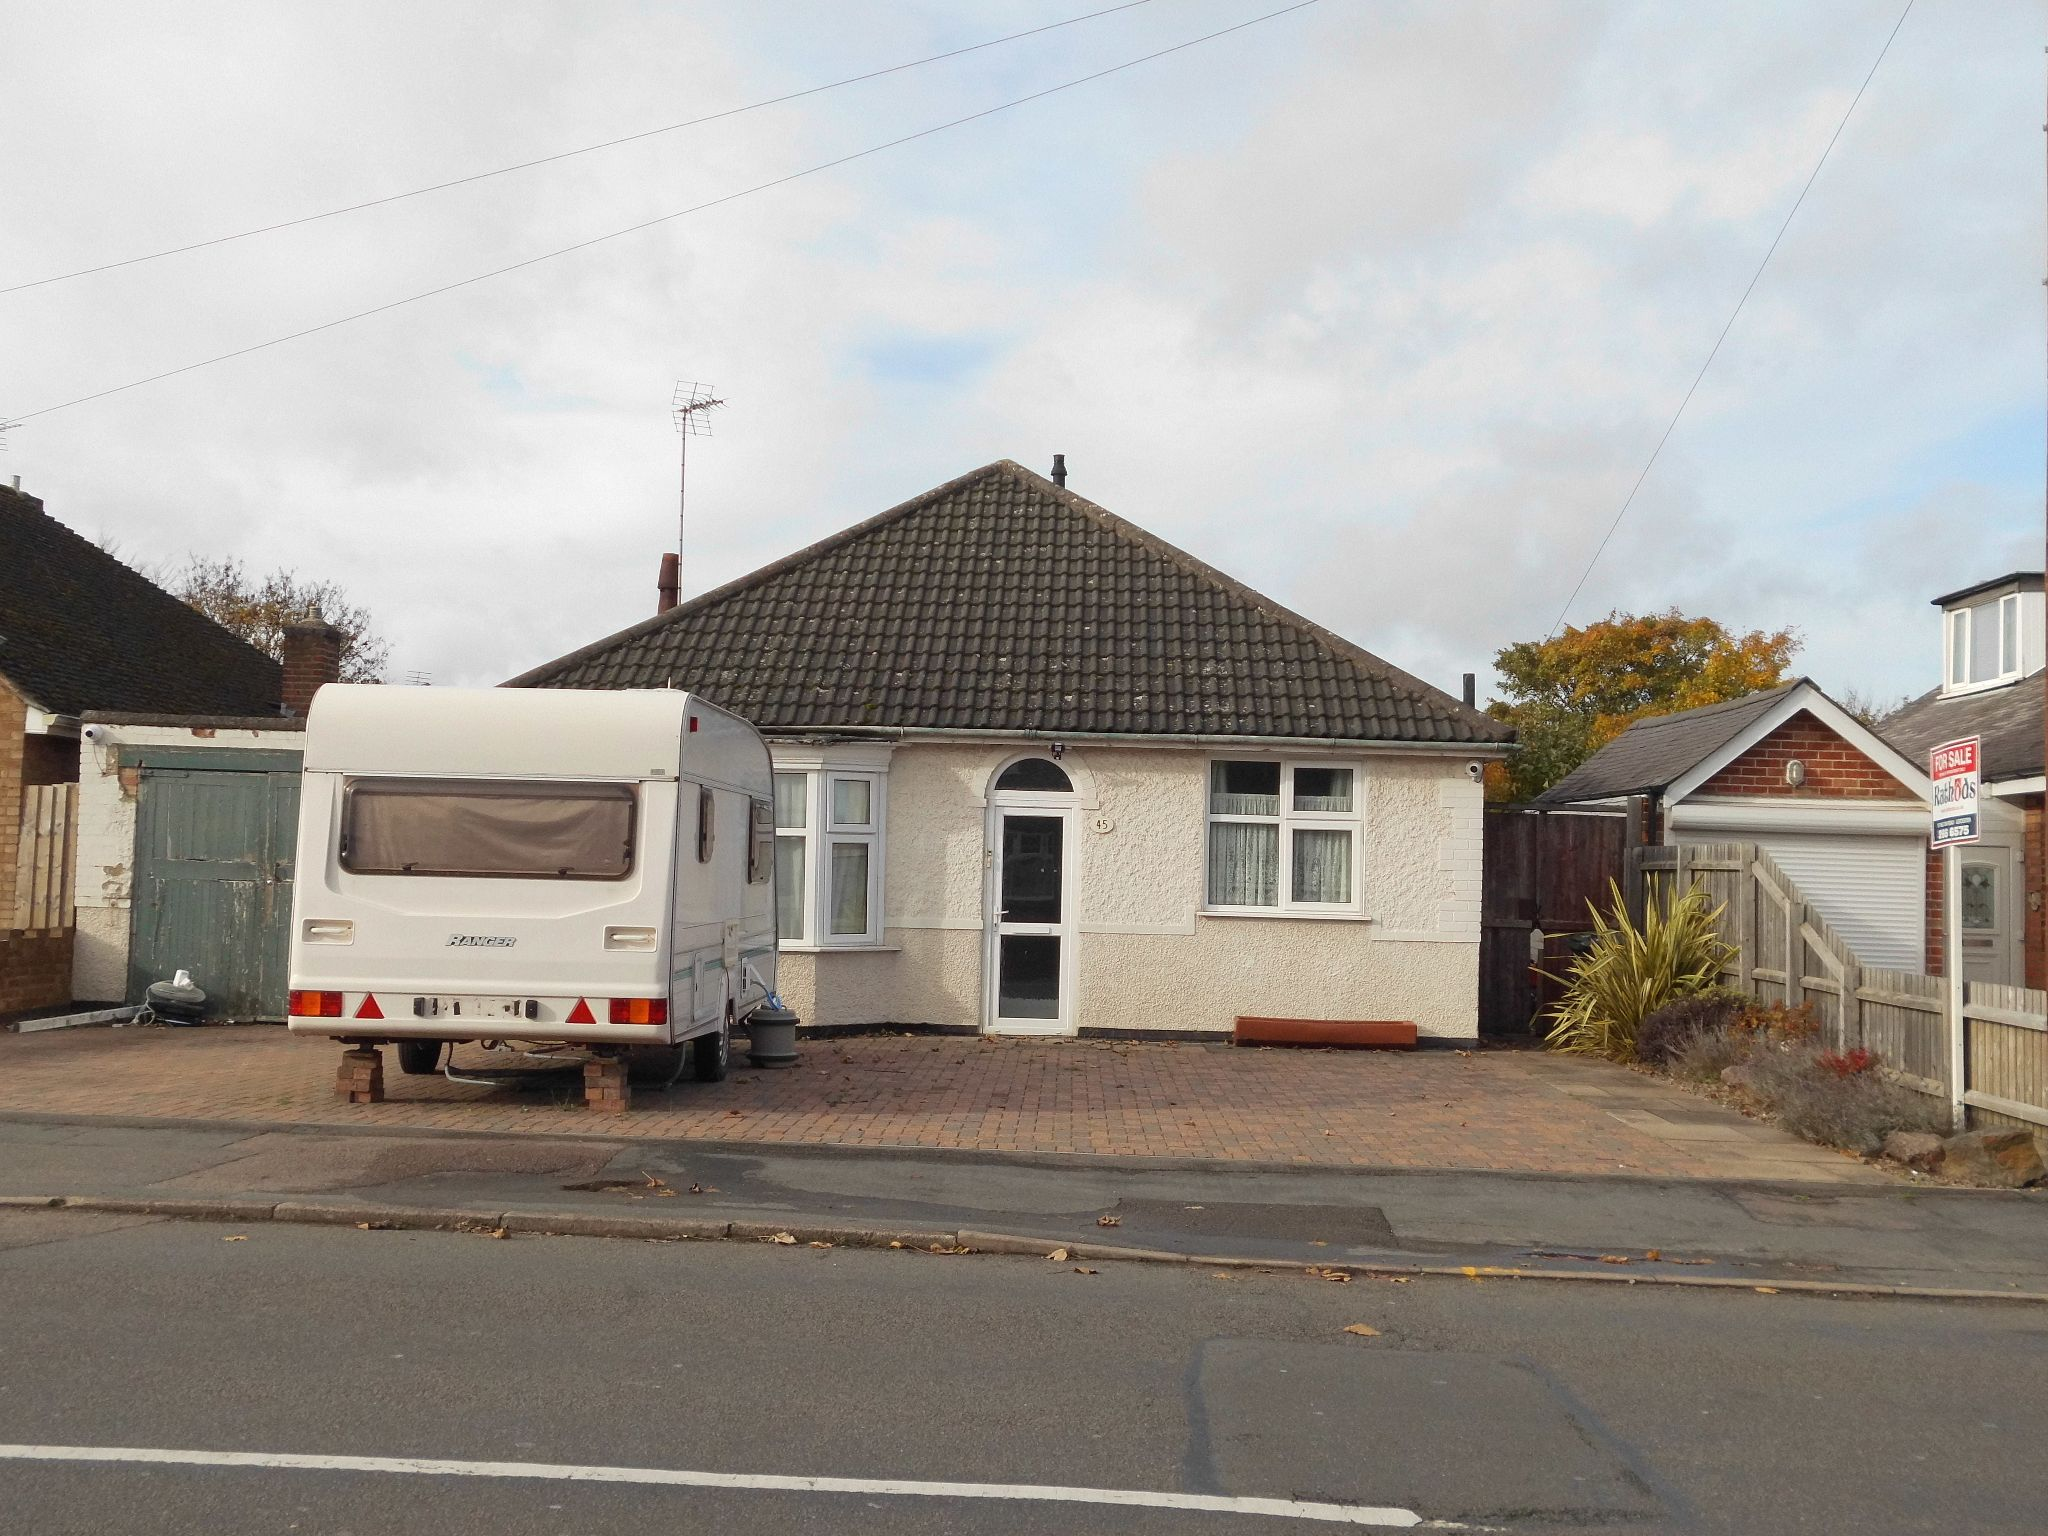 4 bedroom detached bungalow SSTC in Leicester - Photograph 1.